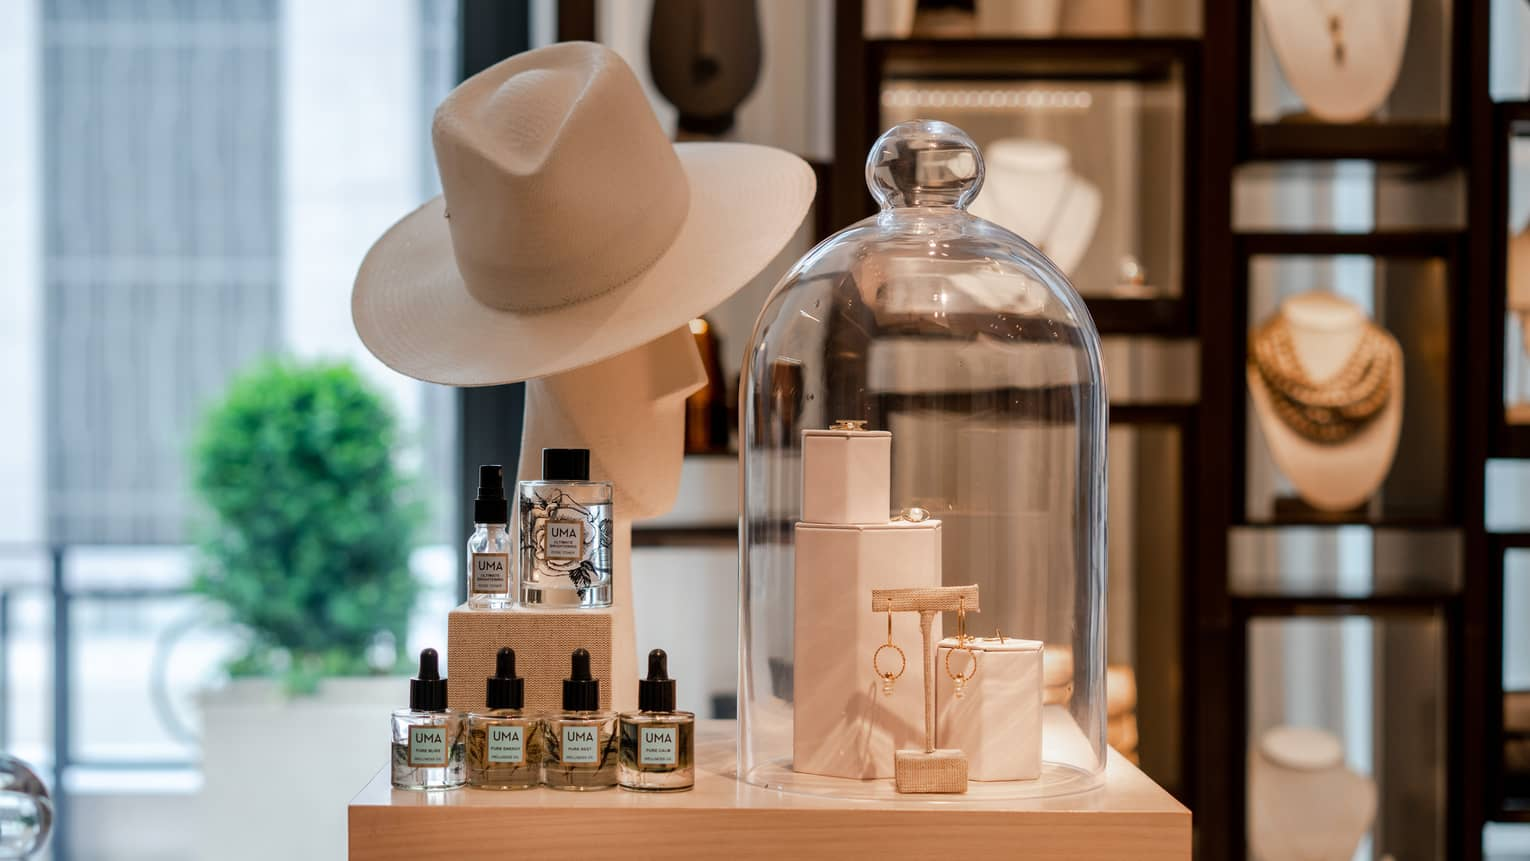 A boutique display of gold jewelry, a beige wide-brimmed hat, and wellness skin care products